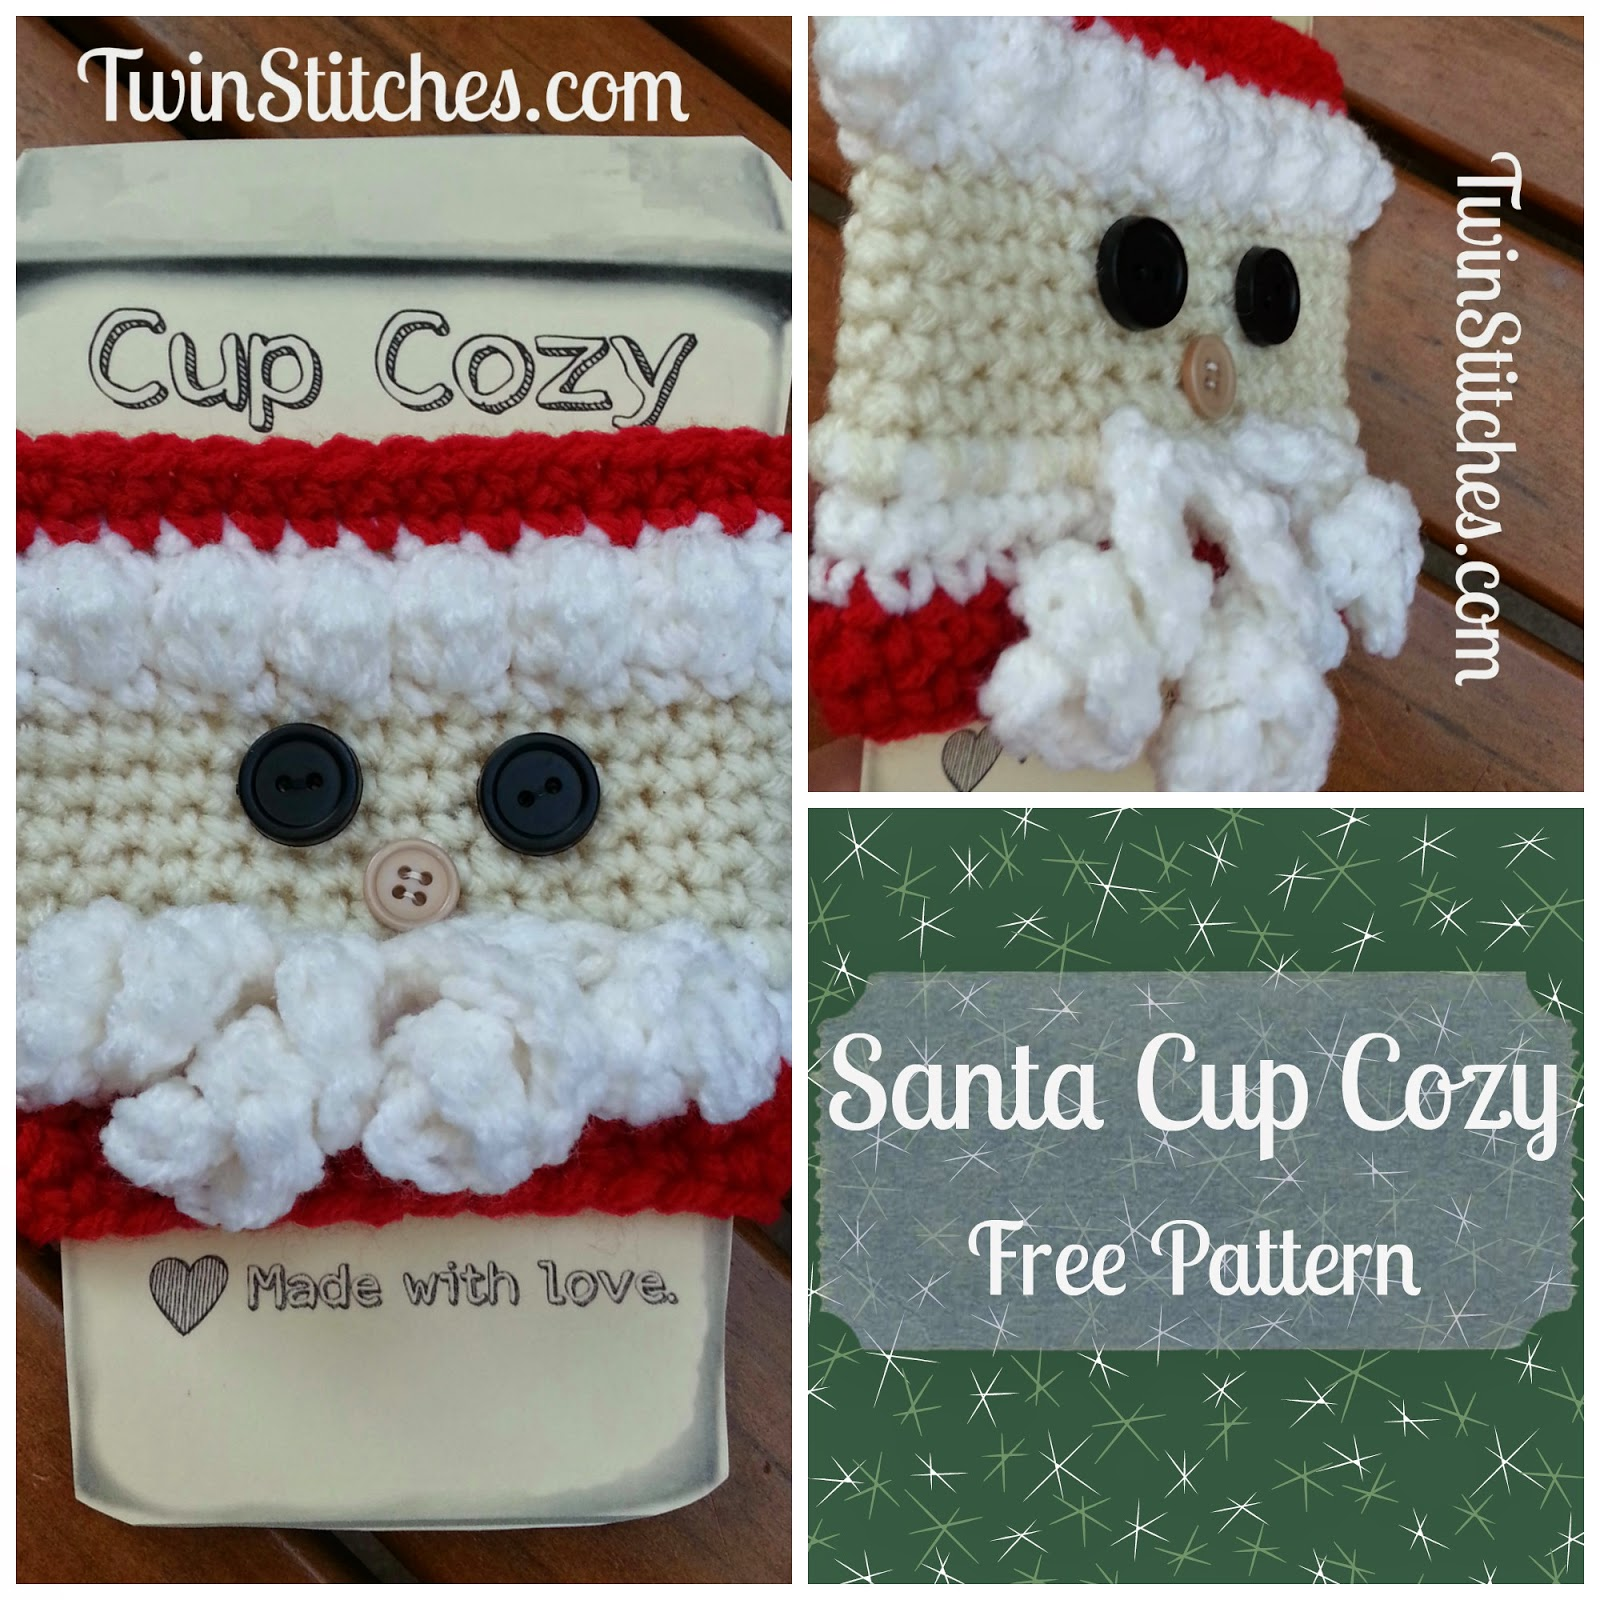 Santa Cup Cozy from Tw-In Stitches Blog